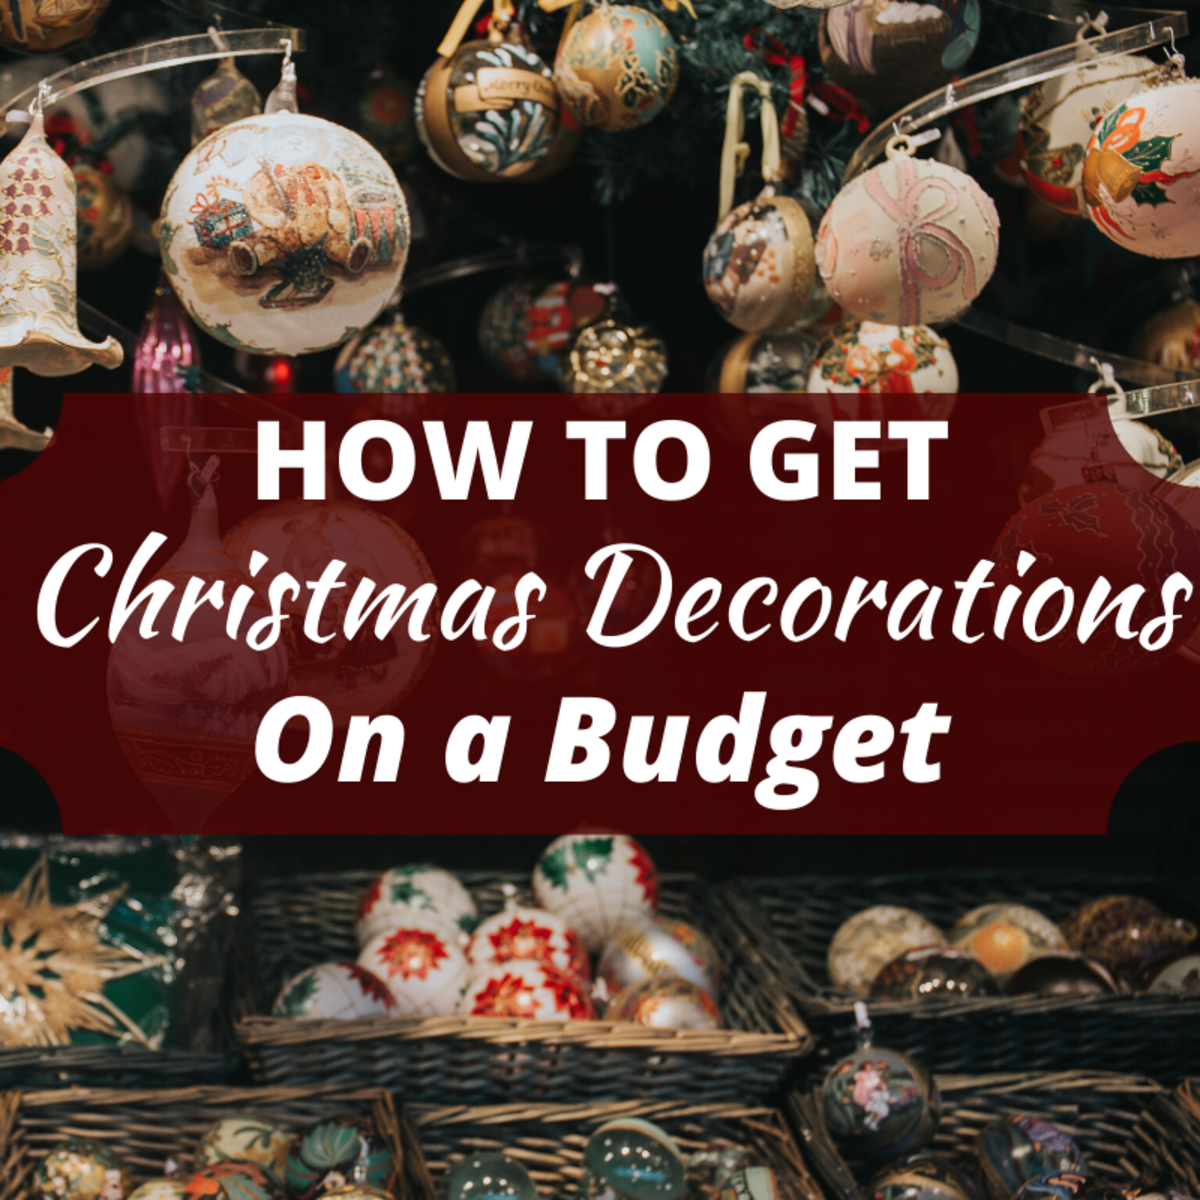 Find out how to get your place looking festive without draining your bank account.